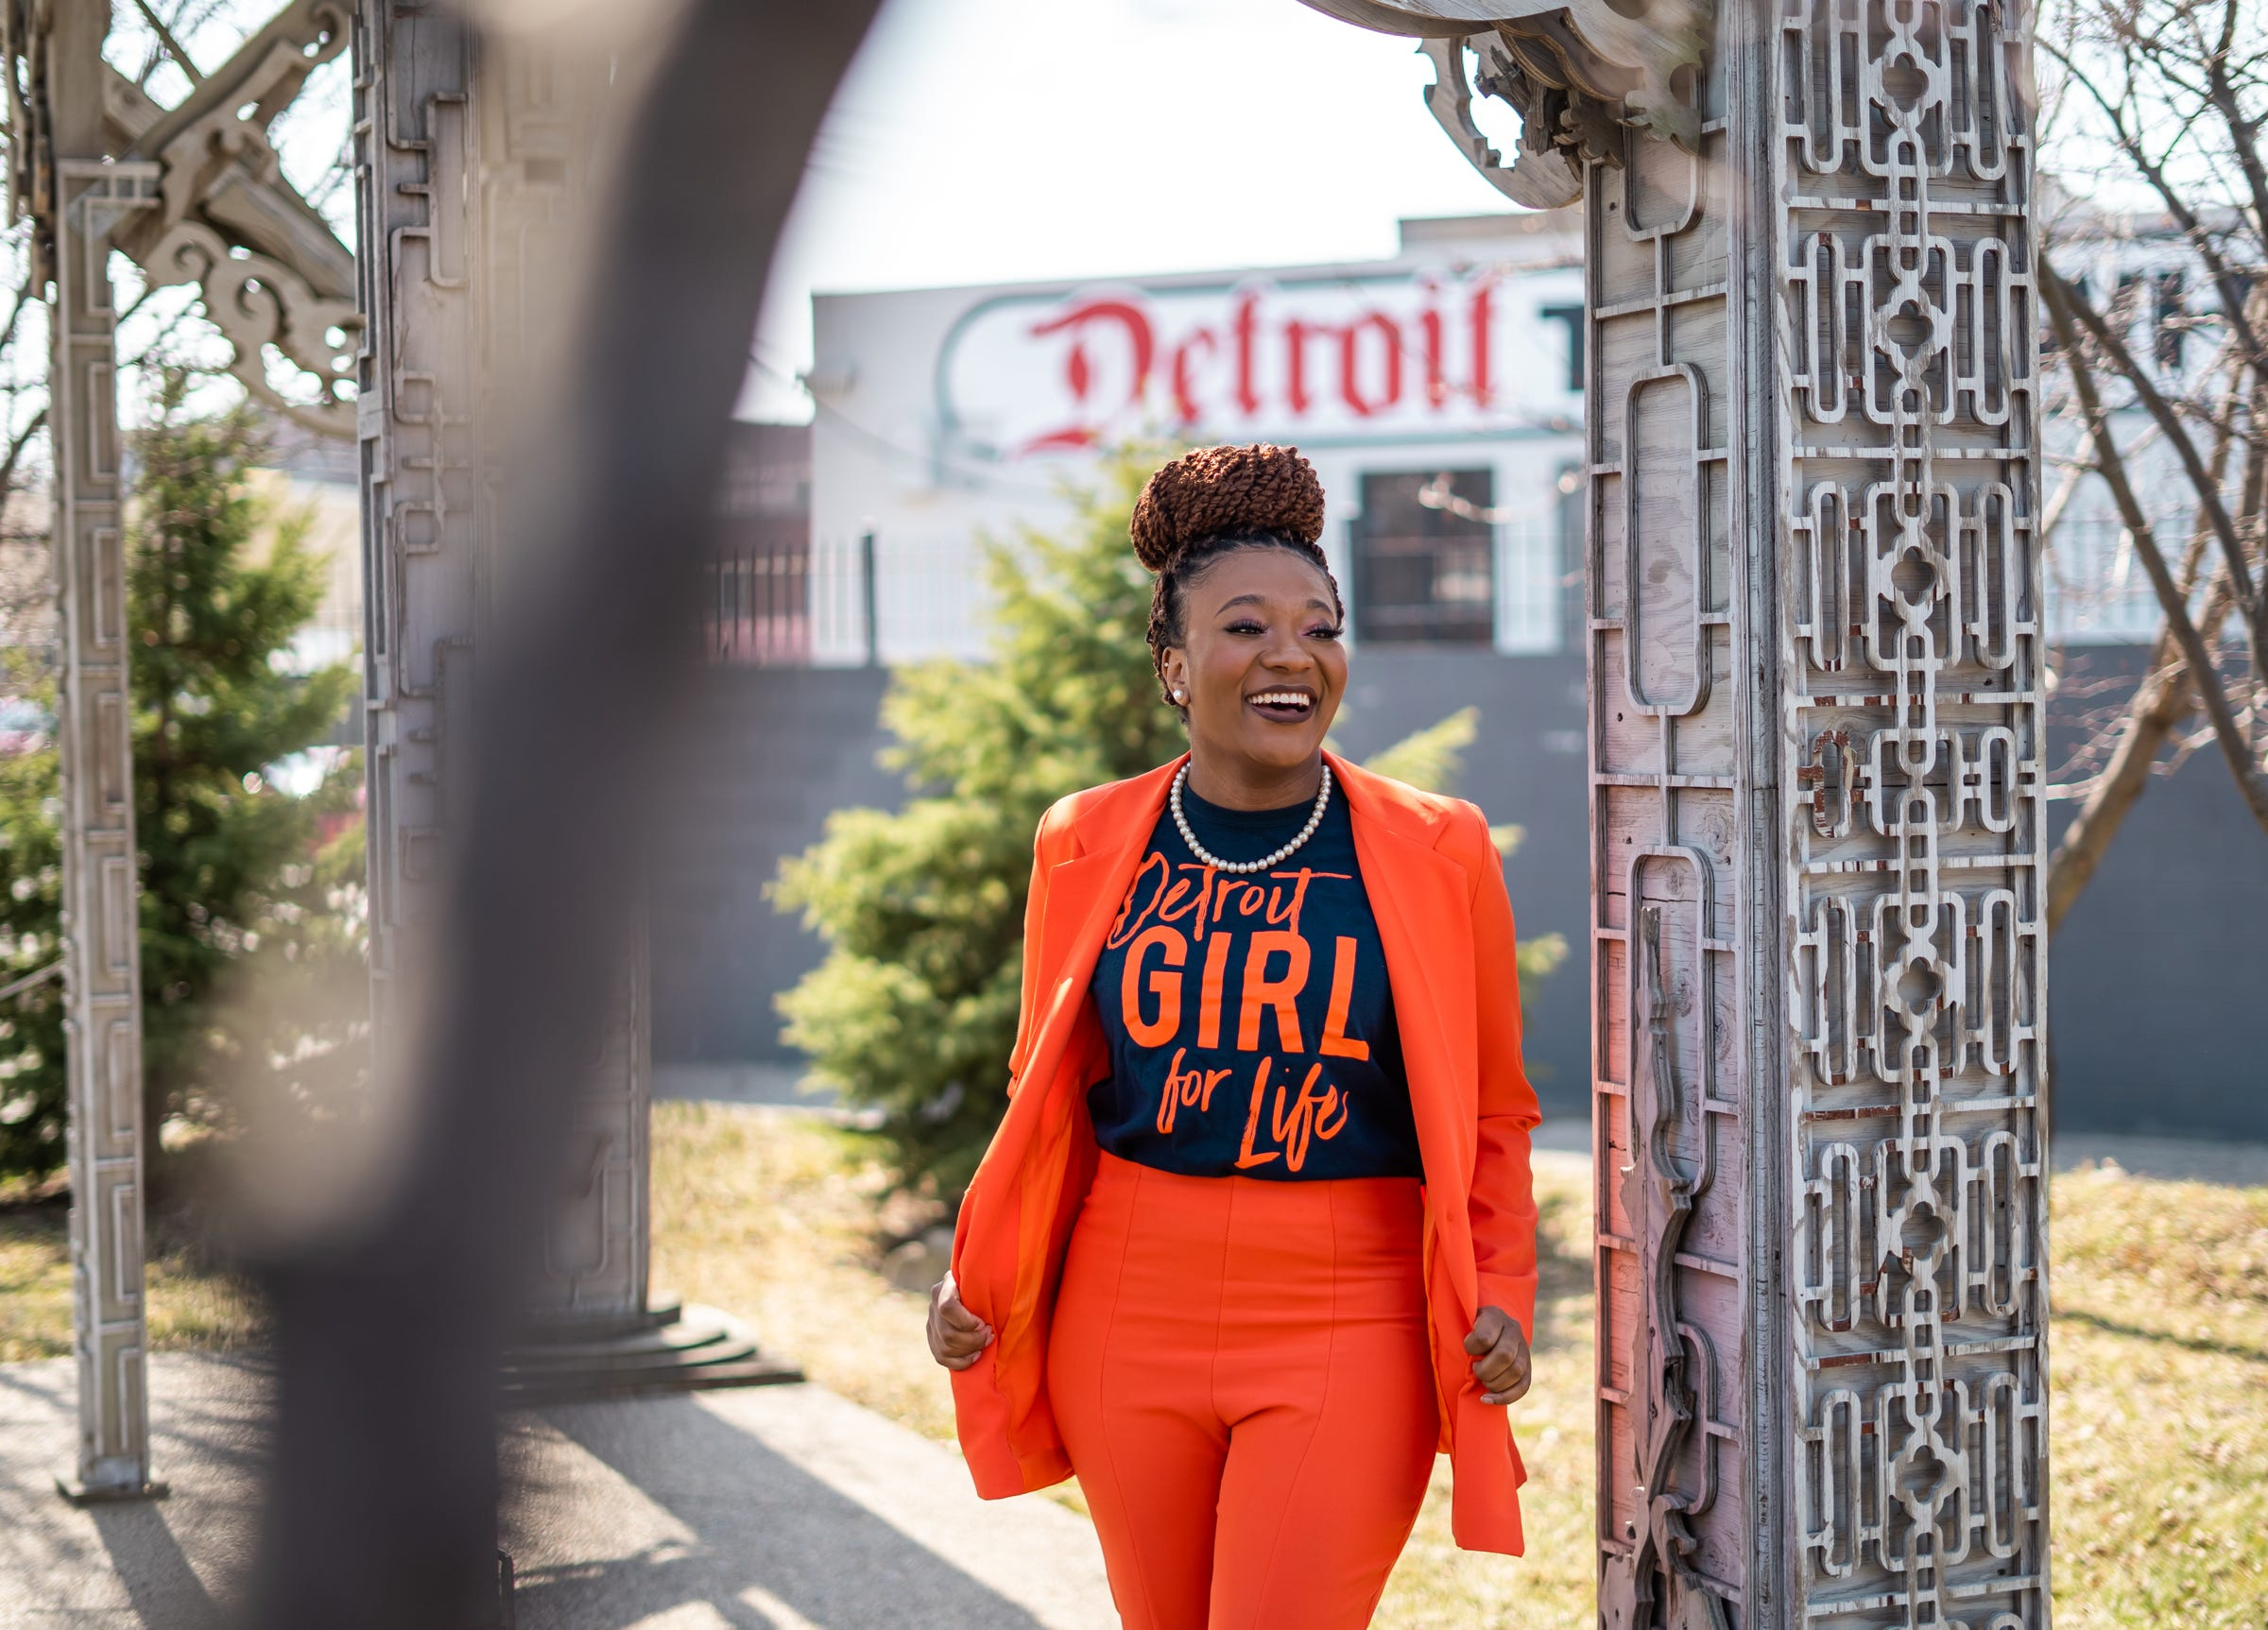 Detroit Is reporter Kyla Wright poses for a photo in the Artist's Village area of Detroit on Wednesday, March 17, 2021.